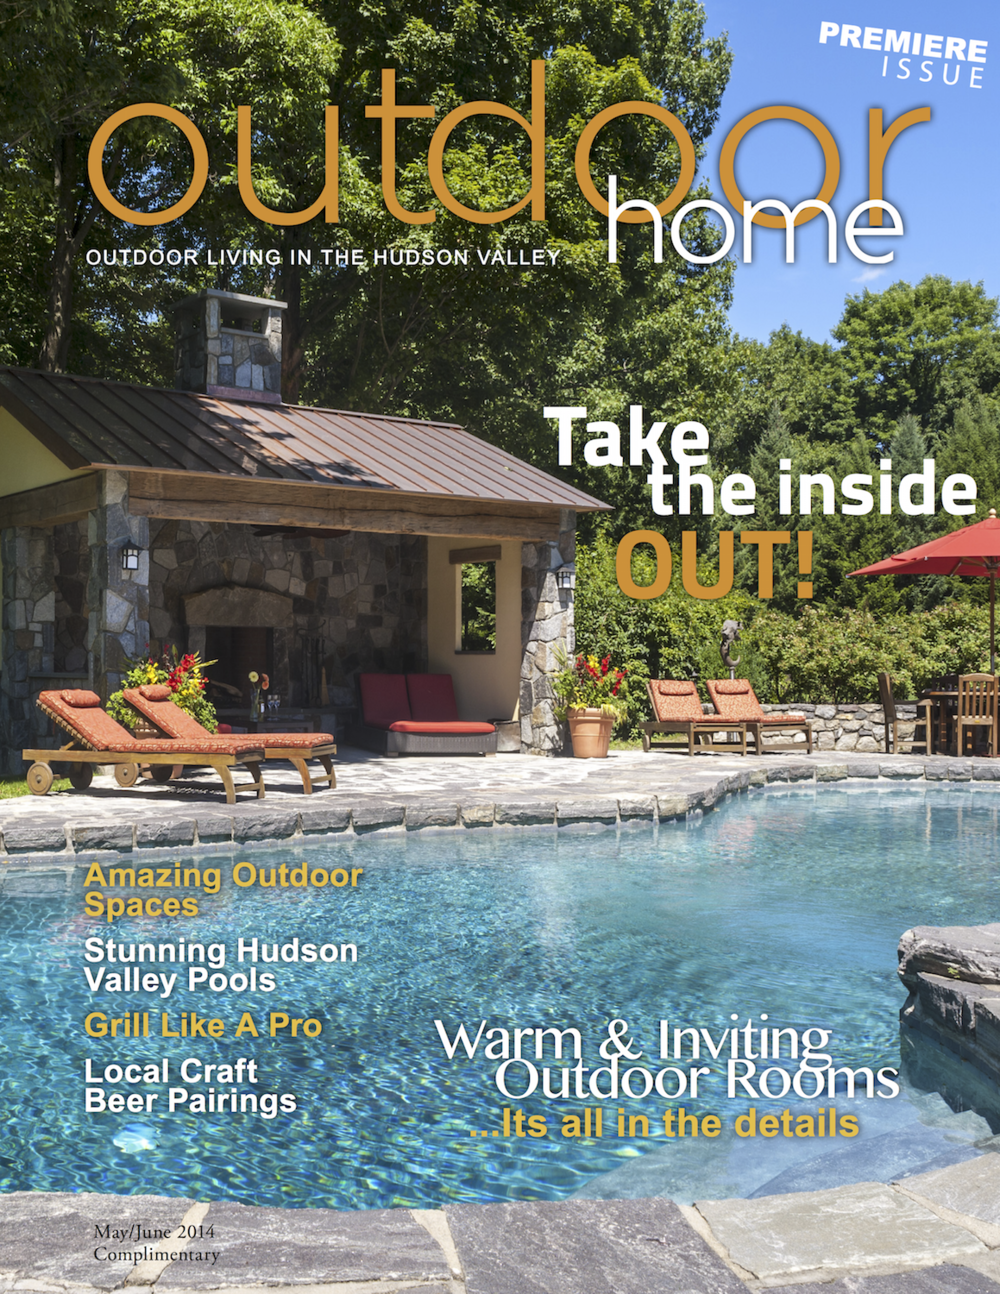 Hudson Valley Magazine - Outdoor Home